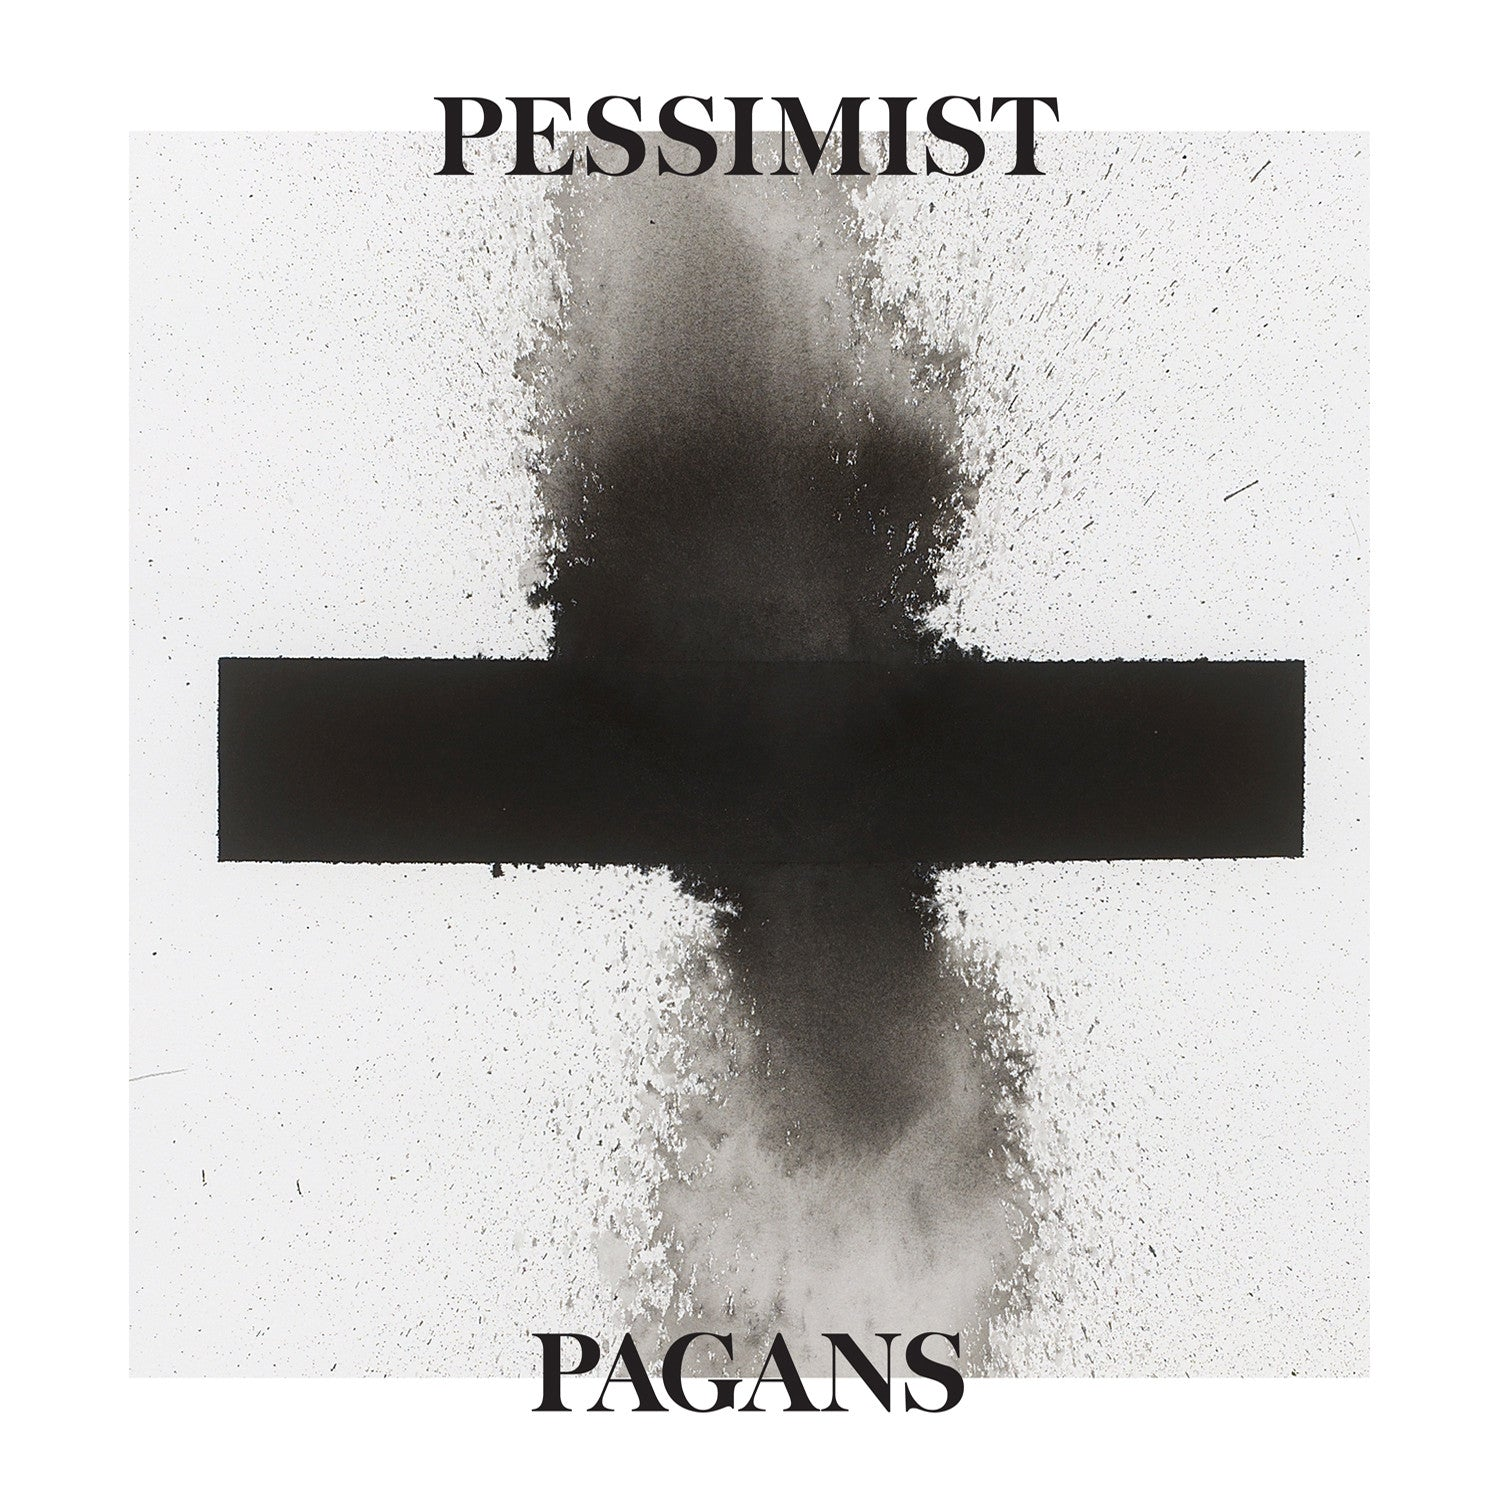 Pessimist - Pagans , Vinyl - Osiris Music, Unearthed Sounds